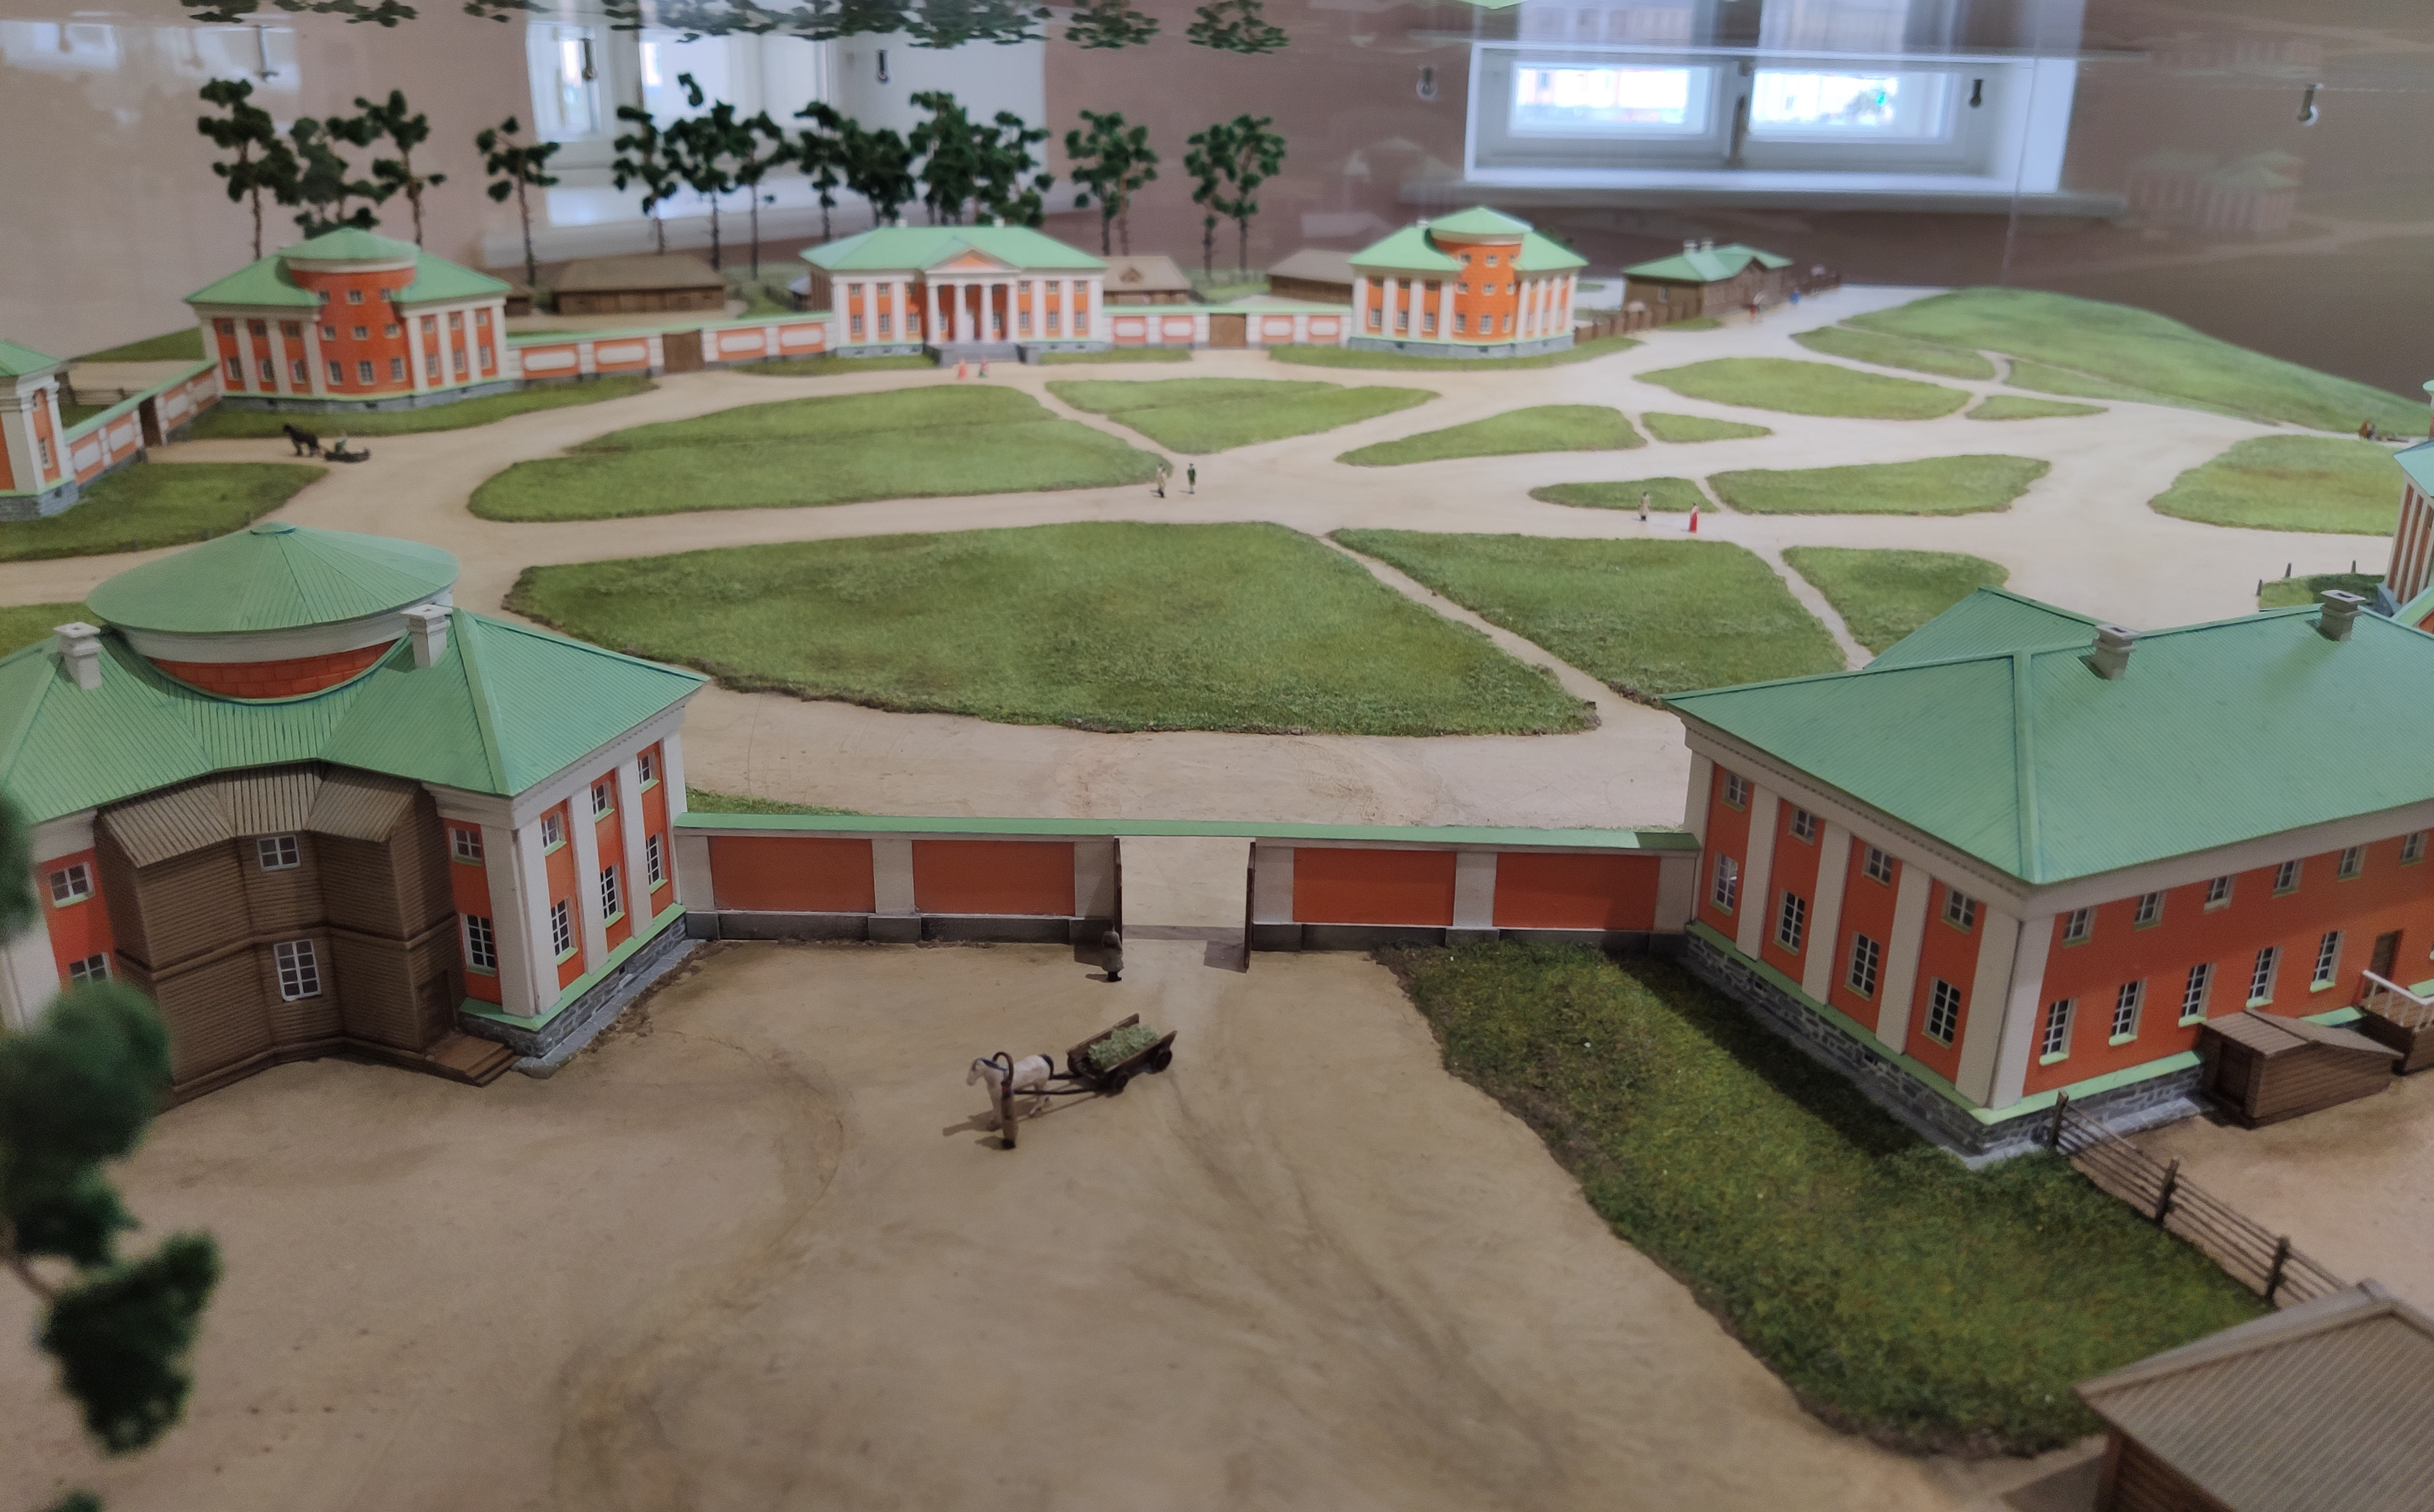 a model of the Round Square (now Lenin Square) of Petrozavodsk from 1775-1785